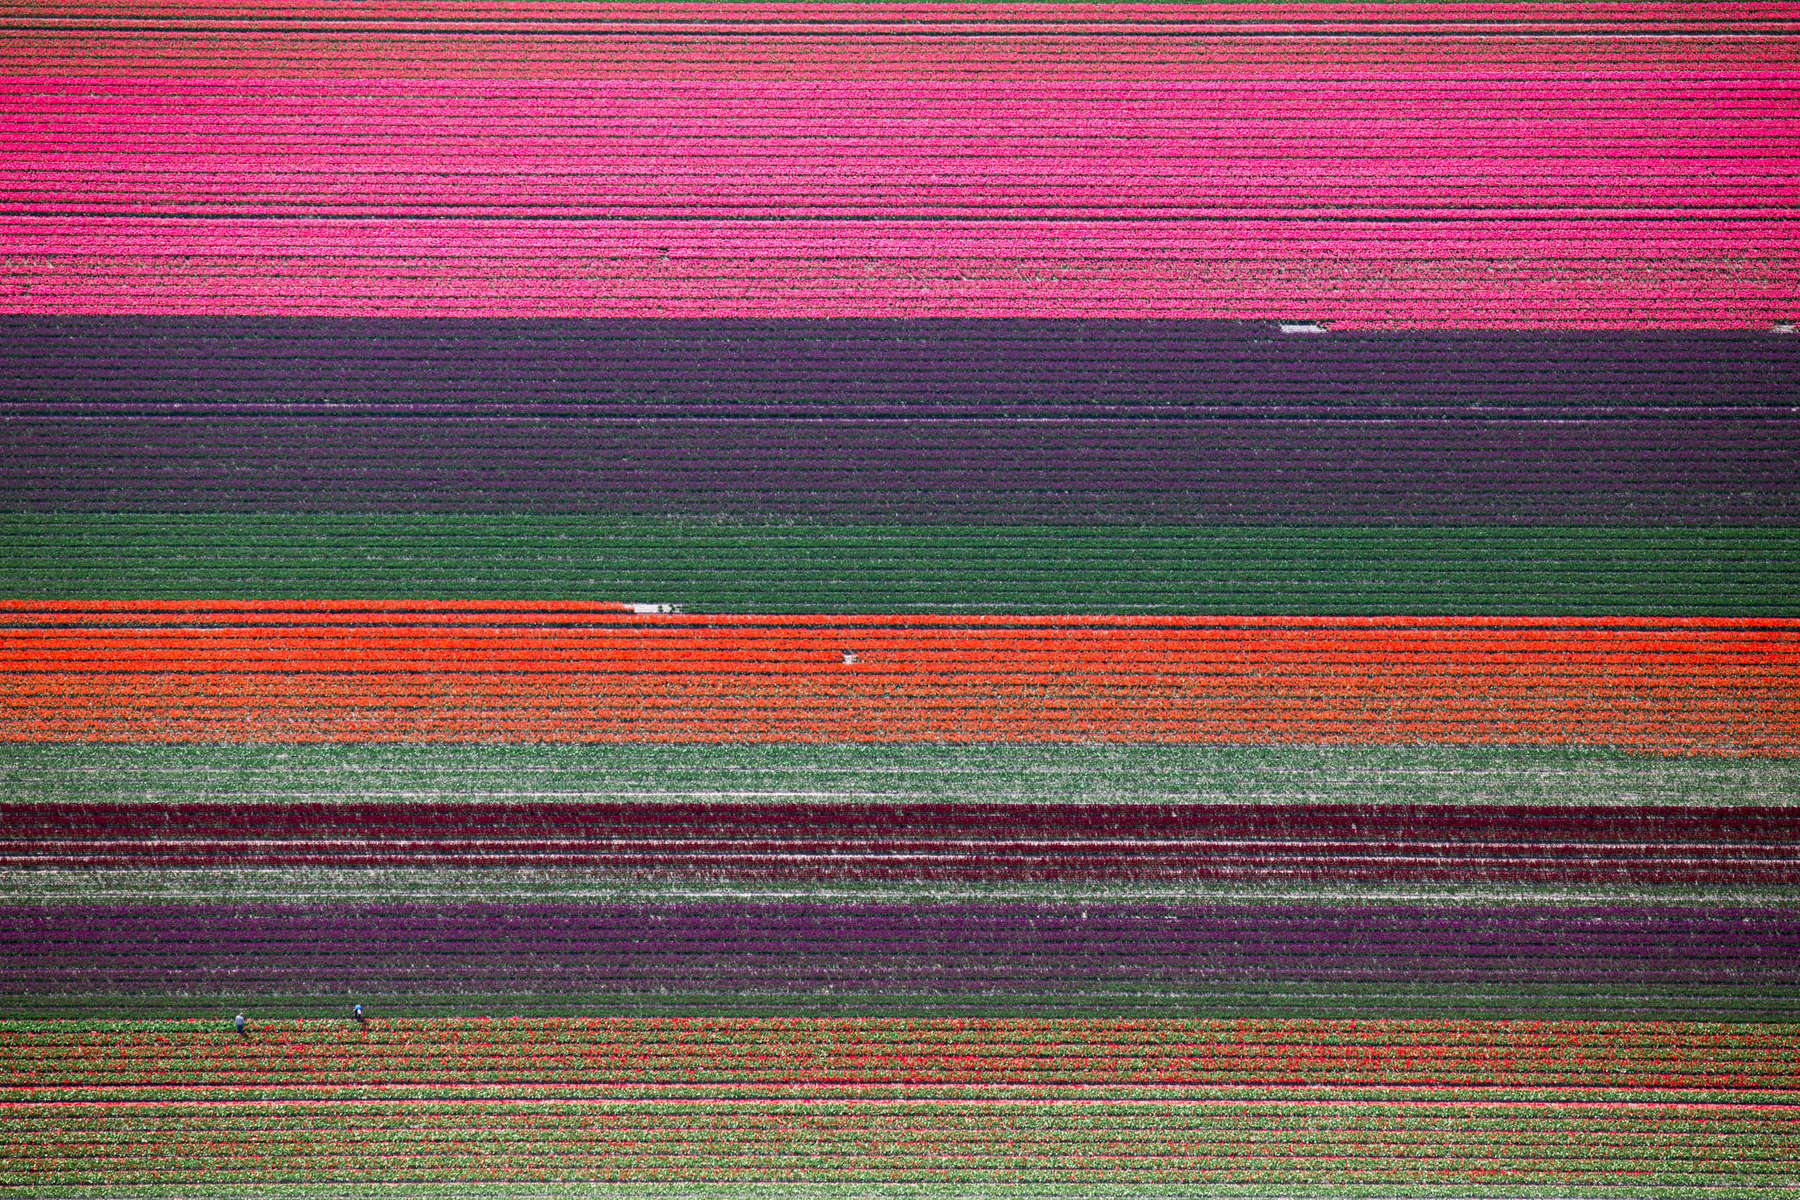 Fields of Color, Netherlands 2015 (150502-0201)